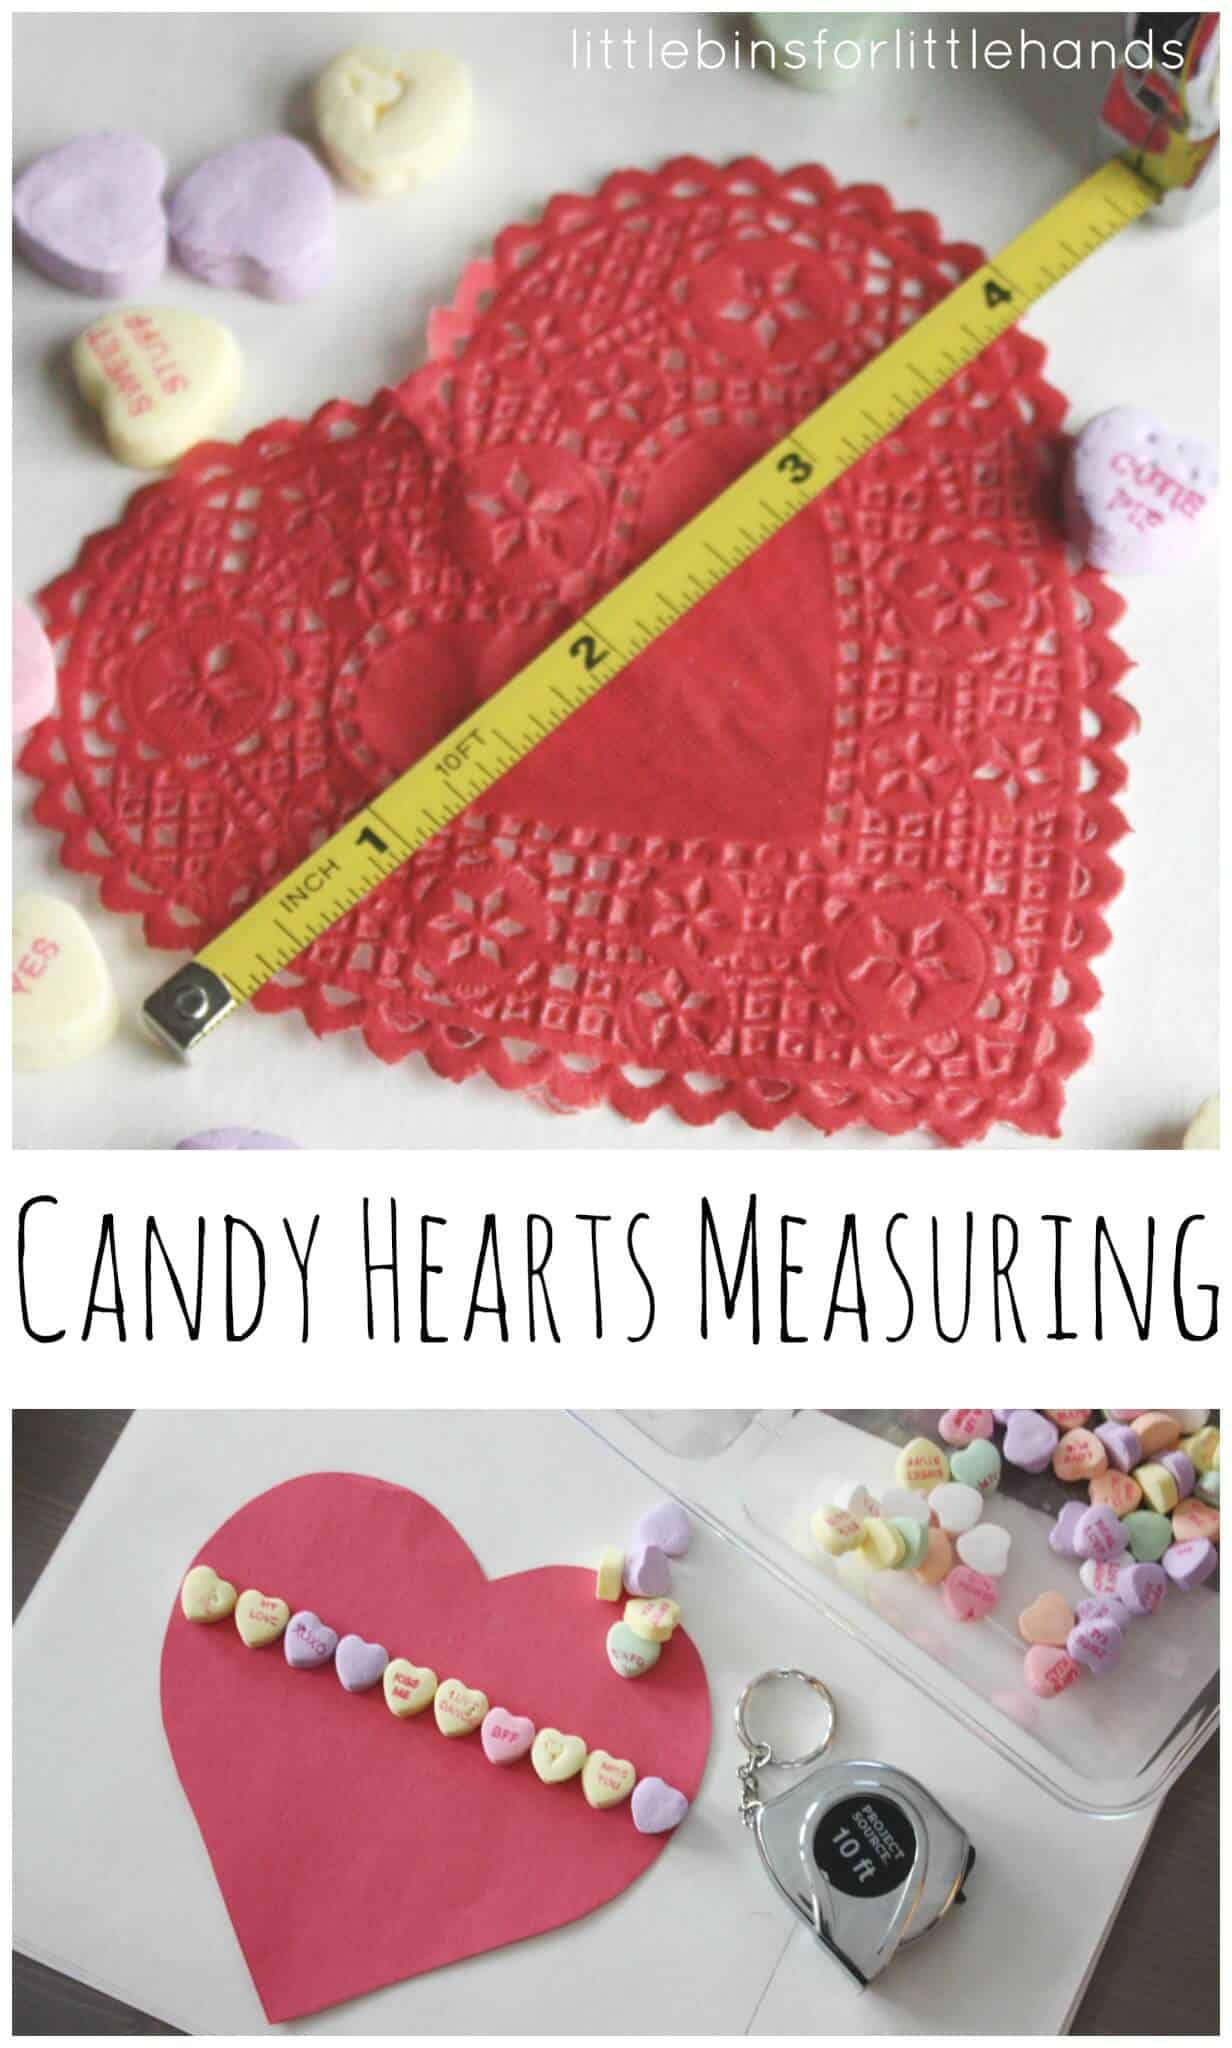 Candy Hearts Activities And Science Ideas For Valentine S Days